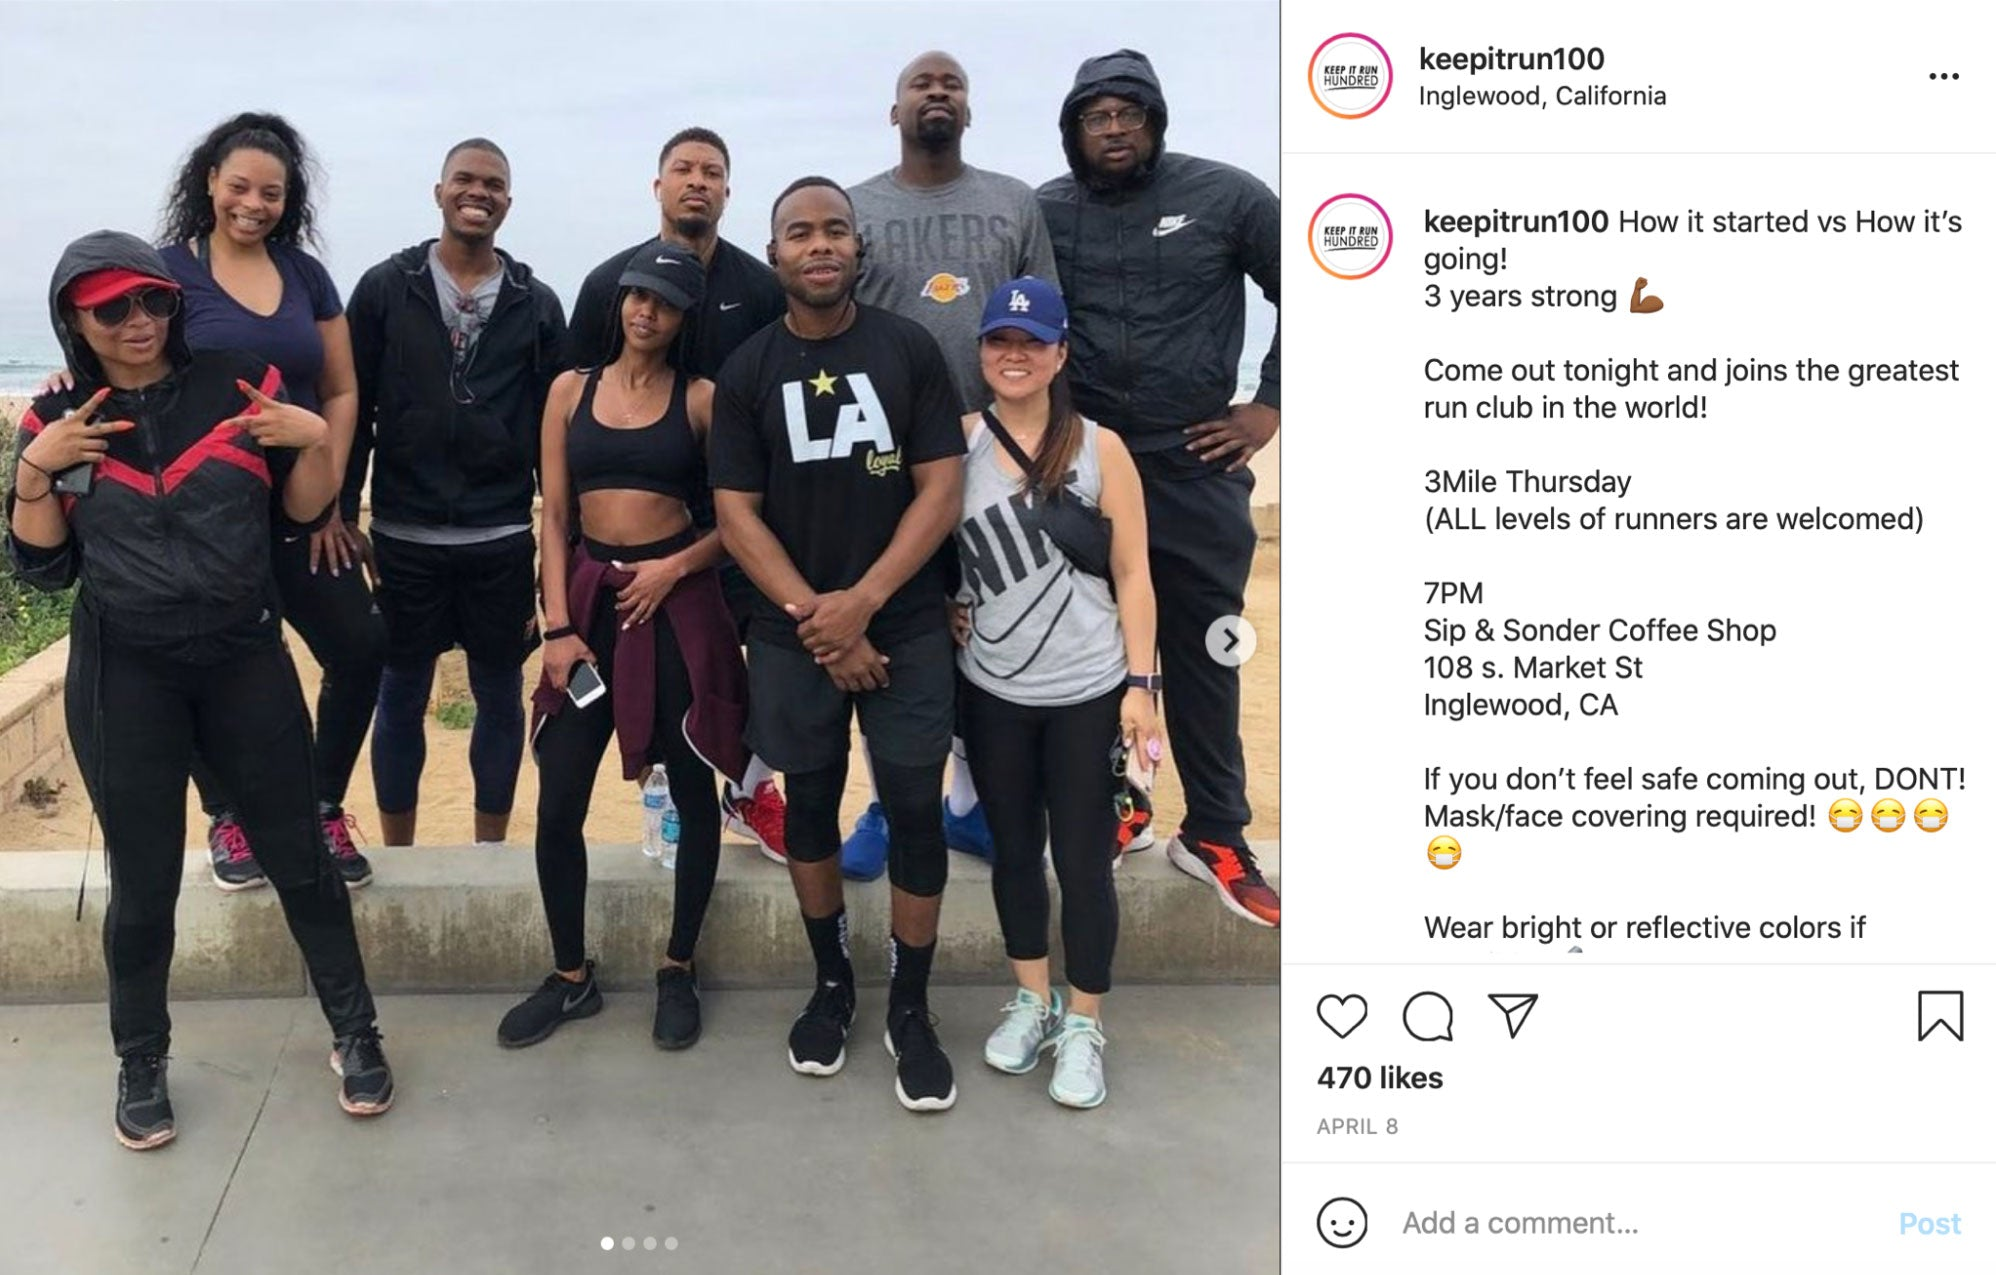 Instagram photo of a group of people in workout gear and Instagram comments